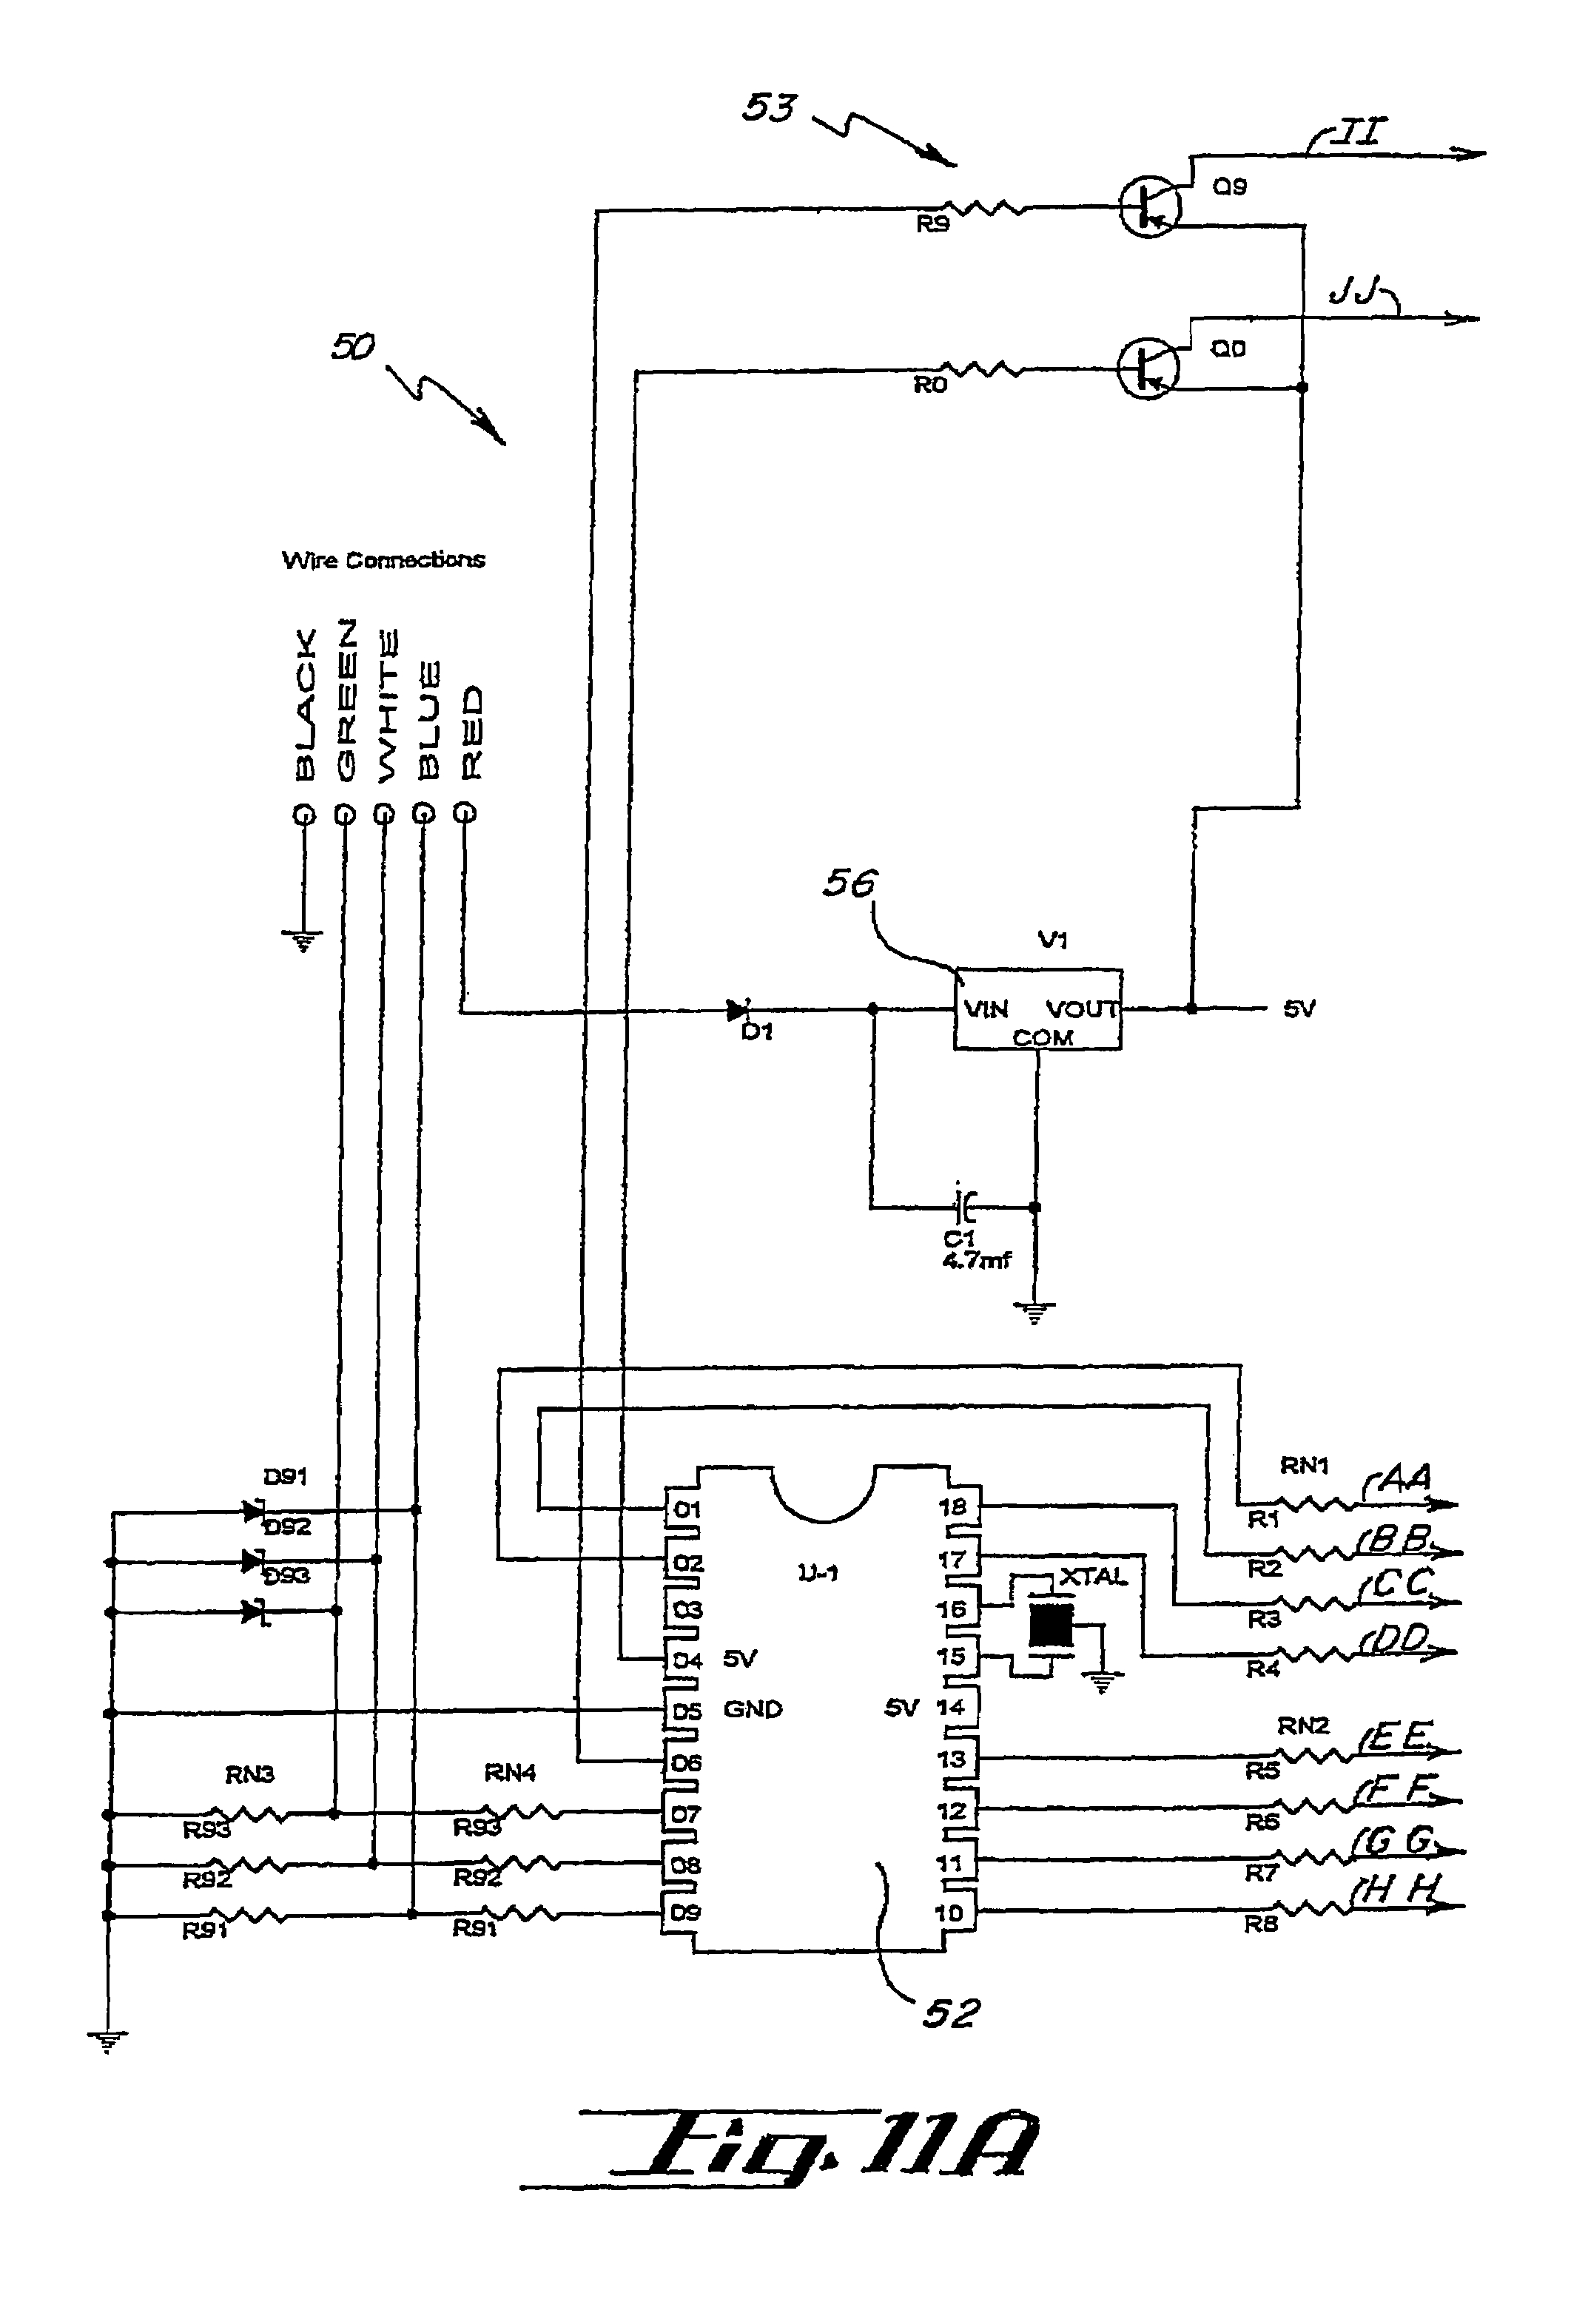 Whelen Arrow Stick Wiring Diagram - Wiring Diagram Rows on whelen siren wiring, whelen lightbar diagram, light bar diagram, whelen lights, whelen radio wiring, whelen edge wiring,